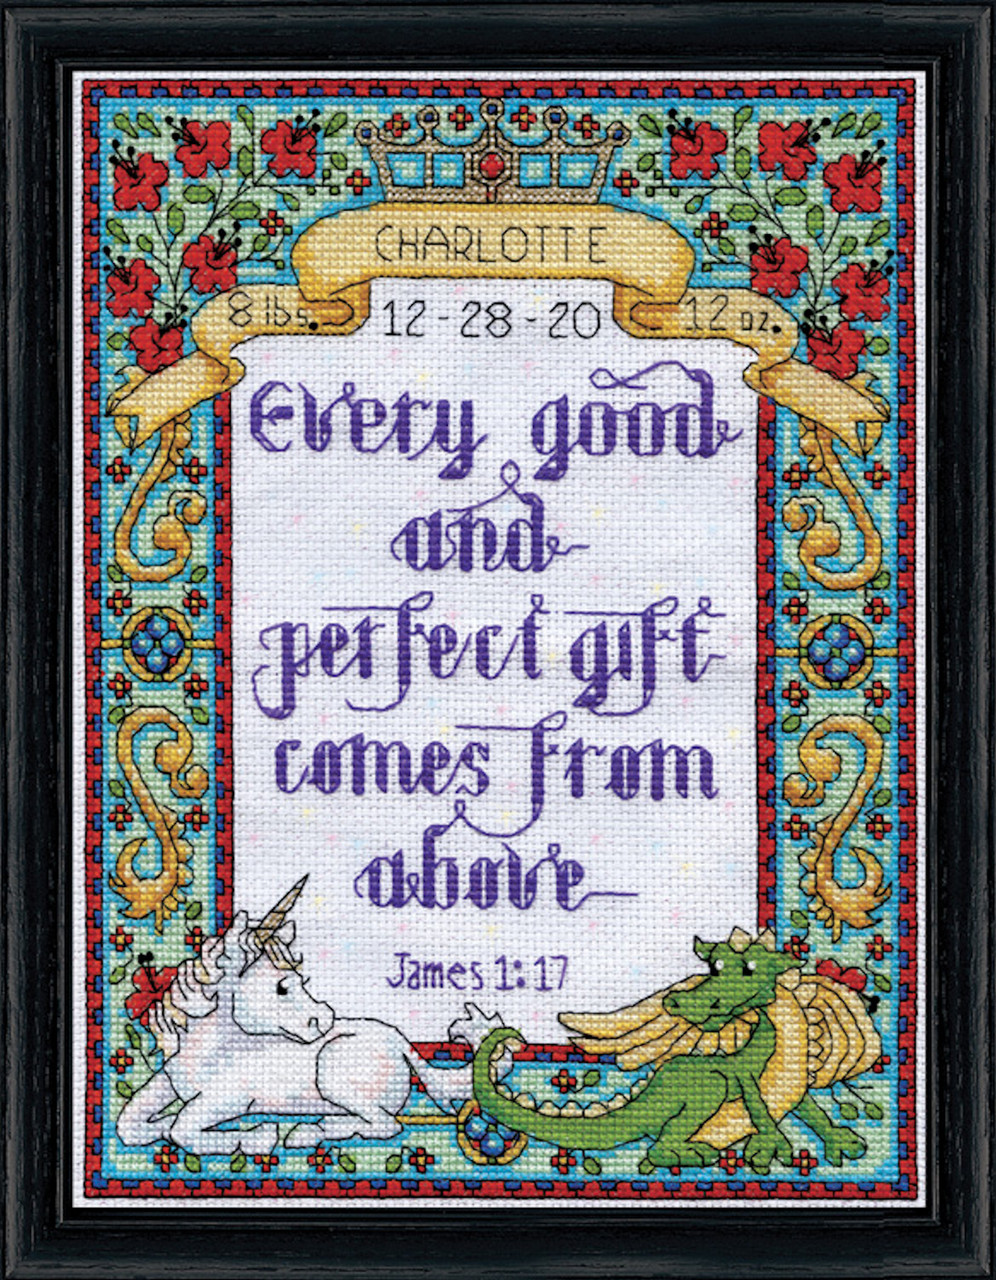 Bucilla Christmas Sampler Pair Stamped Cross Stitch Toys /& Stocking misc filled